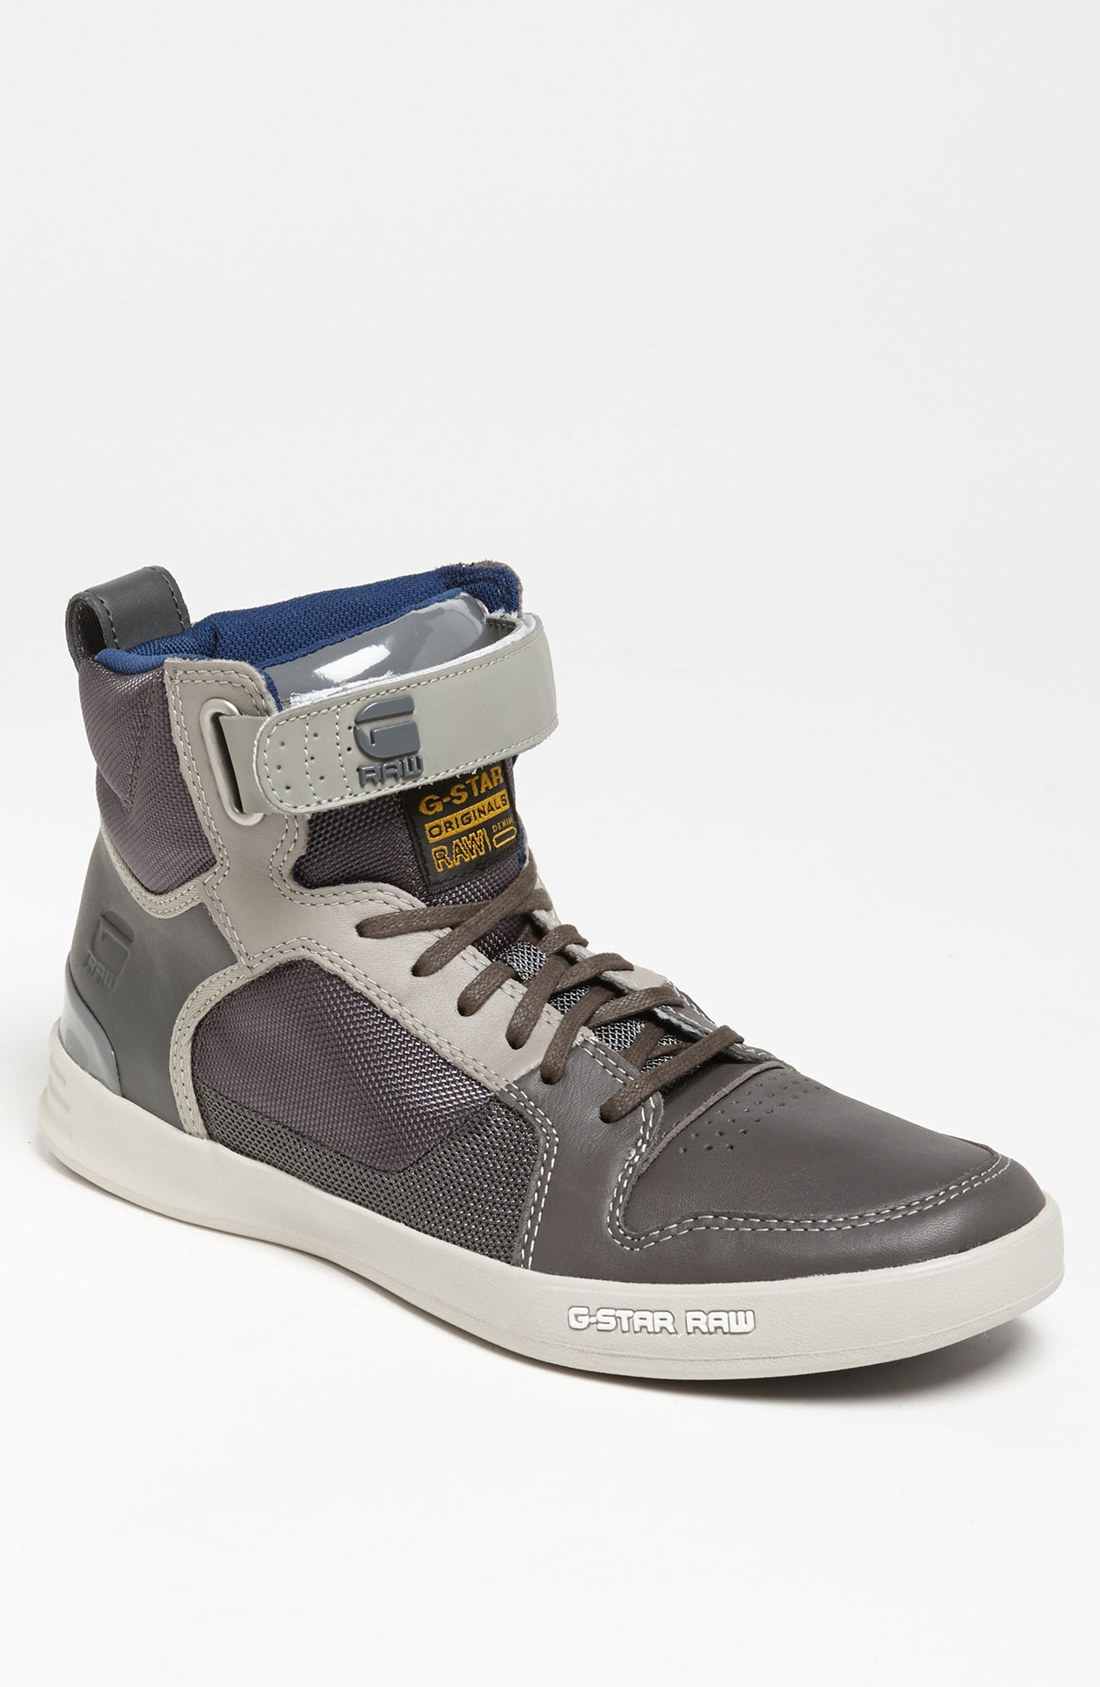 g star raw yard bullion sneaker men in gray for men dark grey light grey lyst. Black Bedroom Furniture Sets. Home Design Ideas